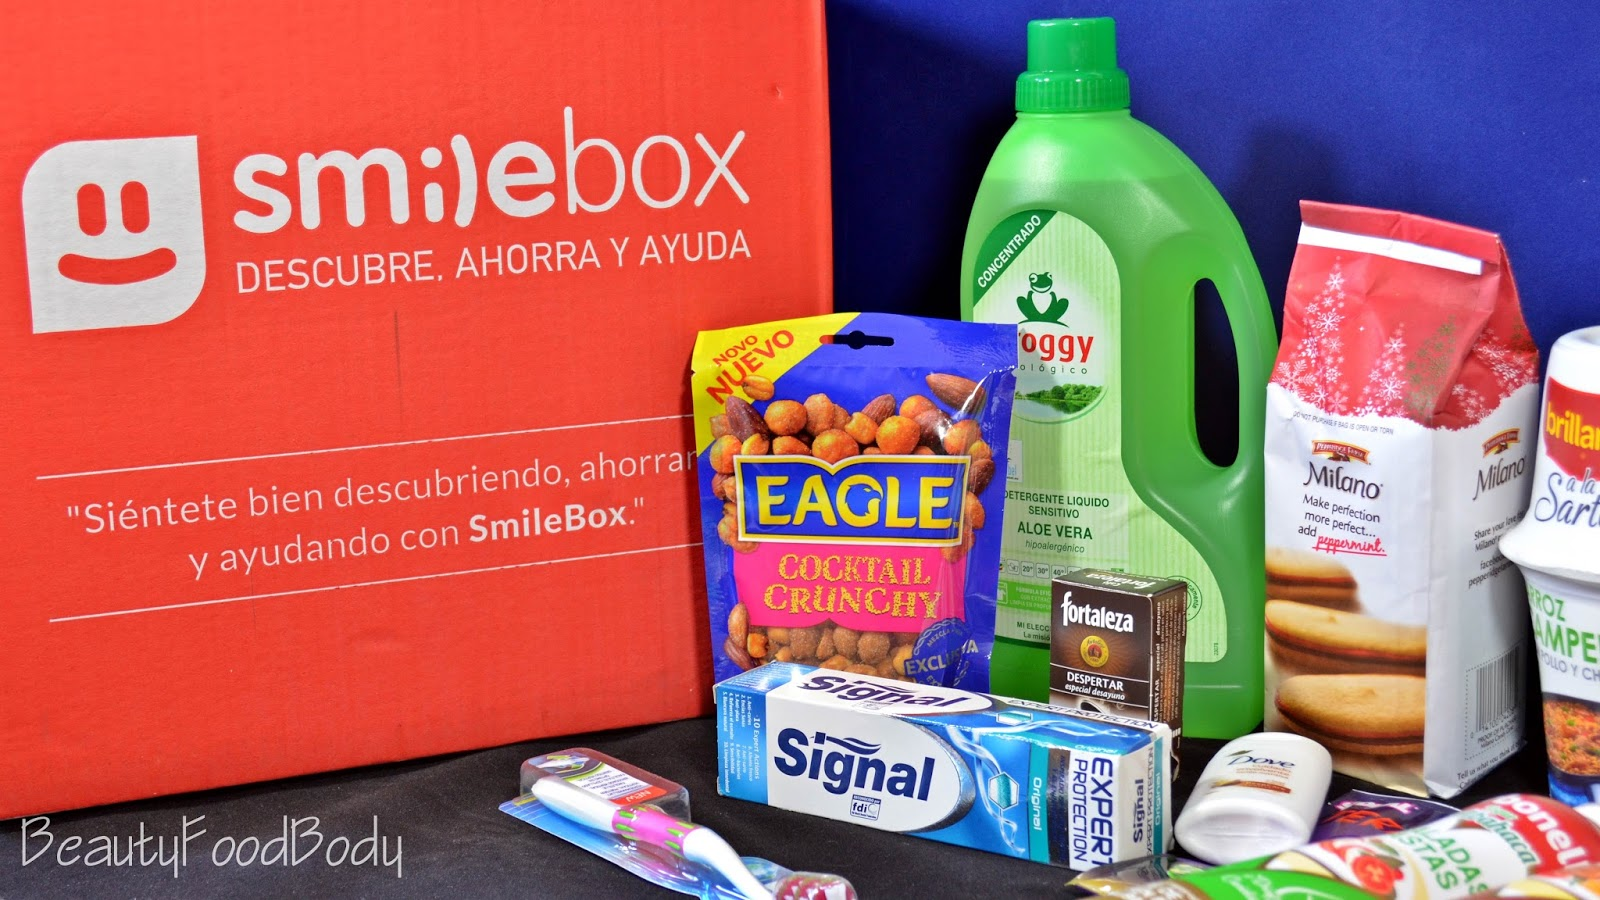 review opinion reseña smilebox all star caja mensual diciembre 2014 febrero 2015 beautyfoodbody